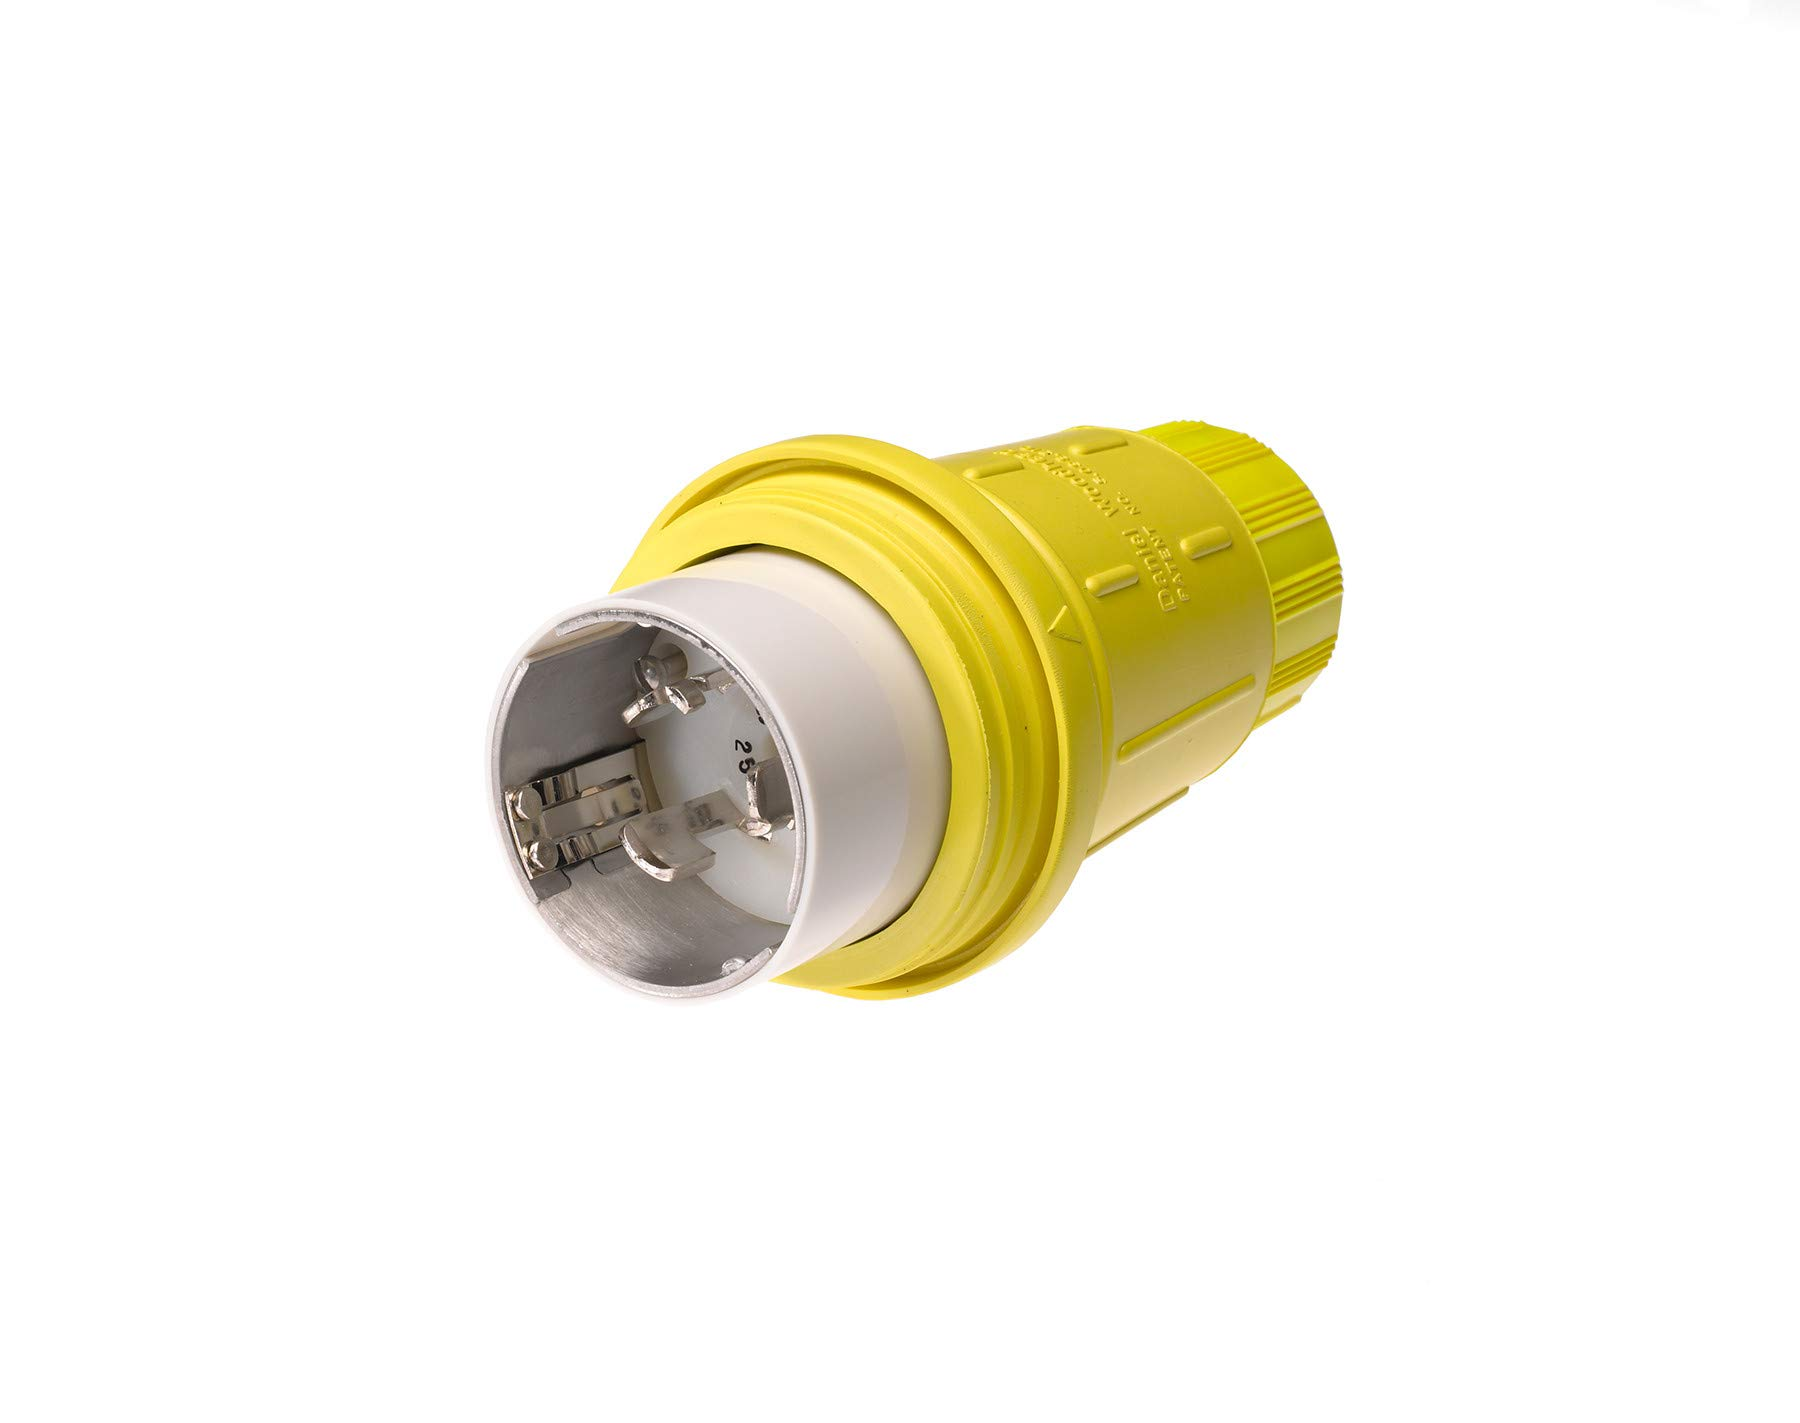 Woodhead CS84W65 Watertite Locking Blade Connector - 3 Pole/4 Wire Industrial Duty Connector with 50 A, 250 V. IC Wiring Accessories